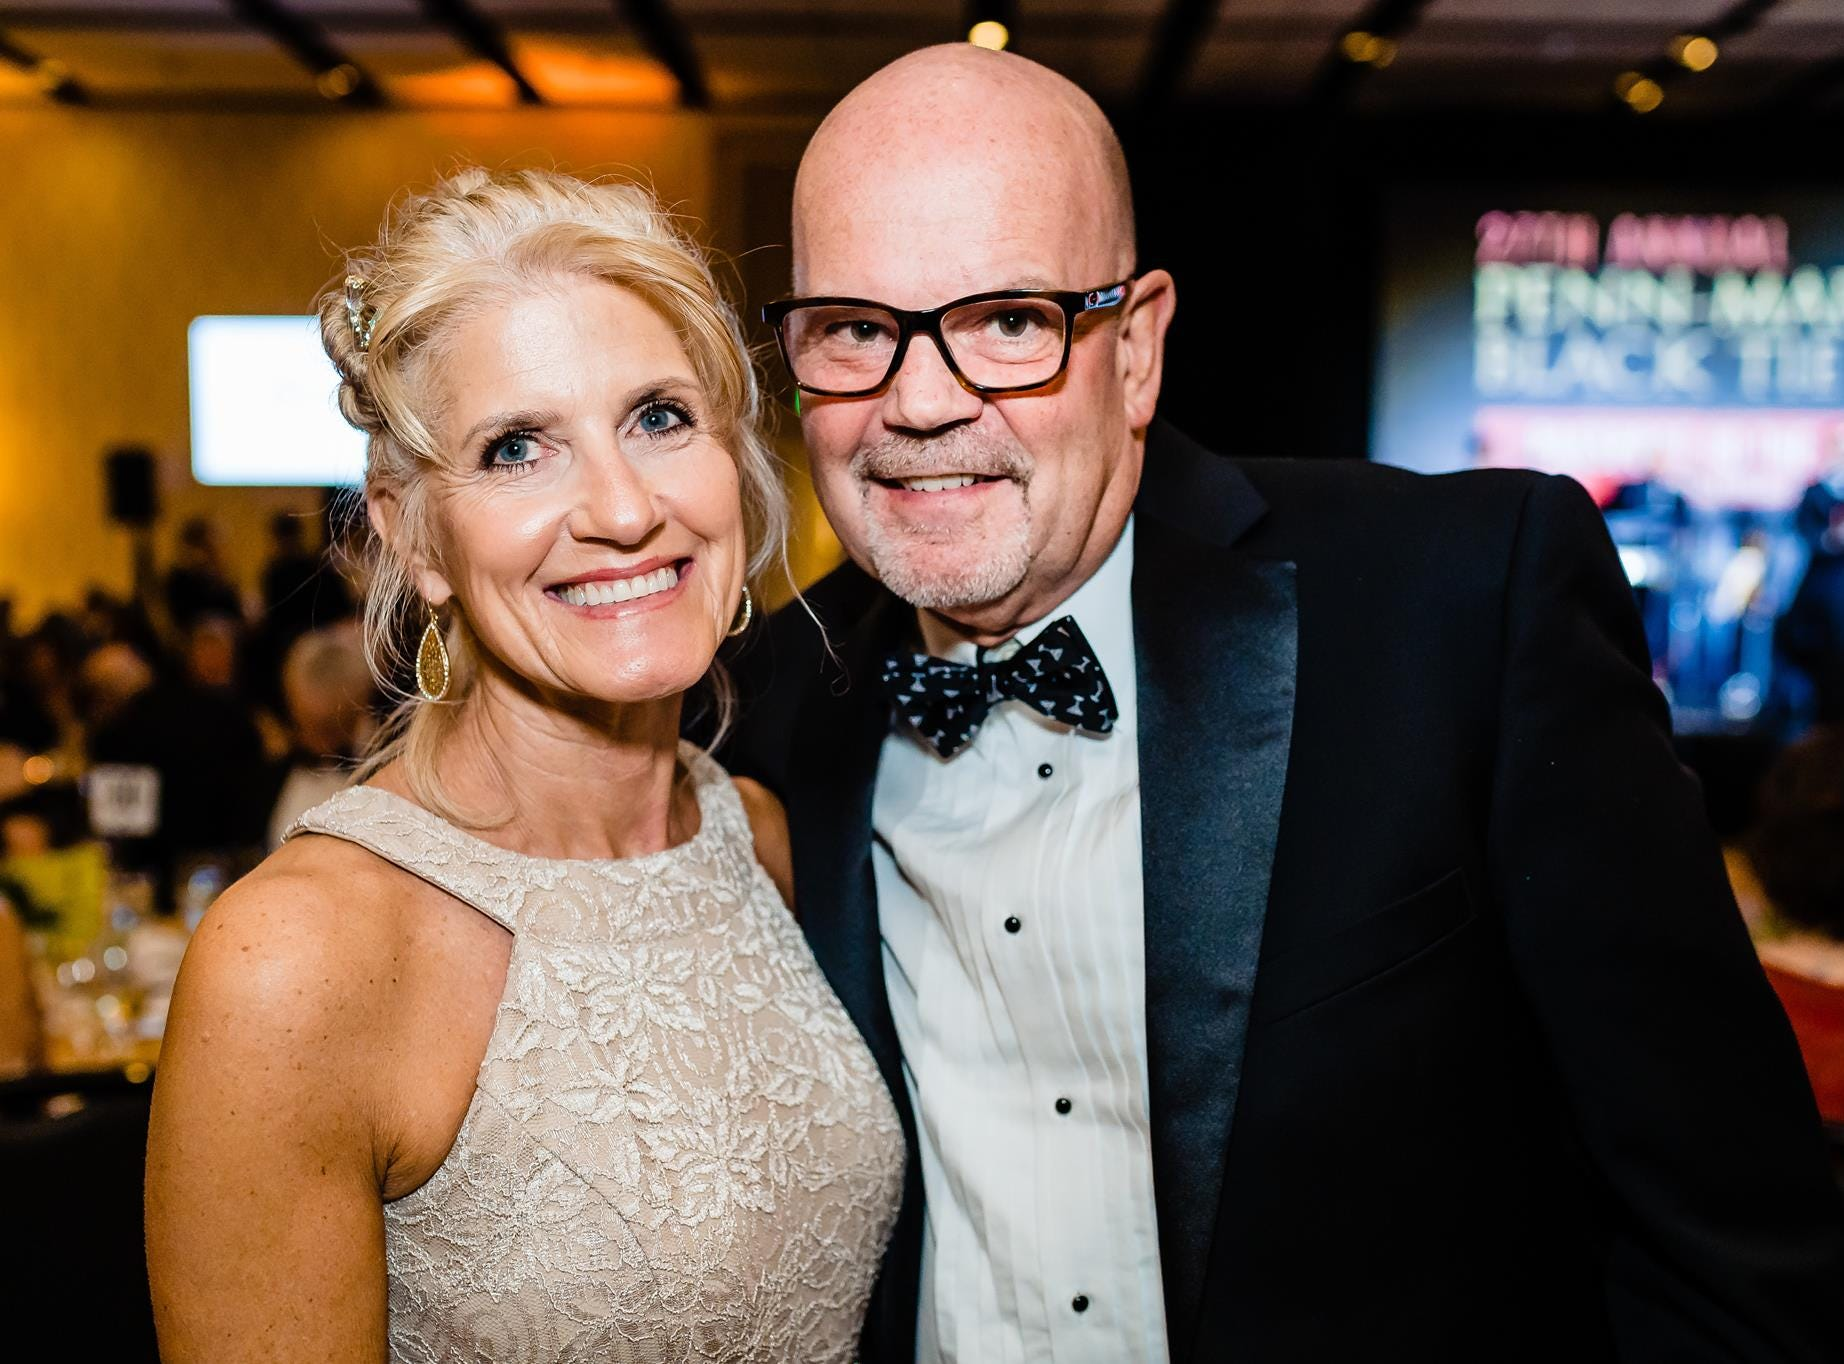 (Left to right) Robin & David Stang pose together at Penn-Mar Human Services' annual Black Tie Gala, Saturday, March 2, 2019.